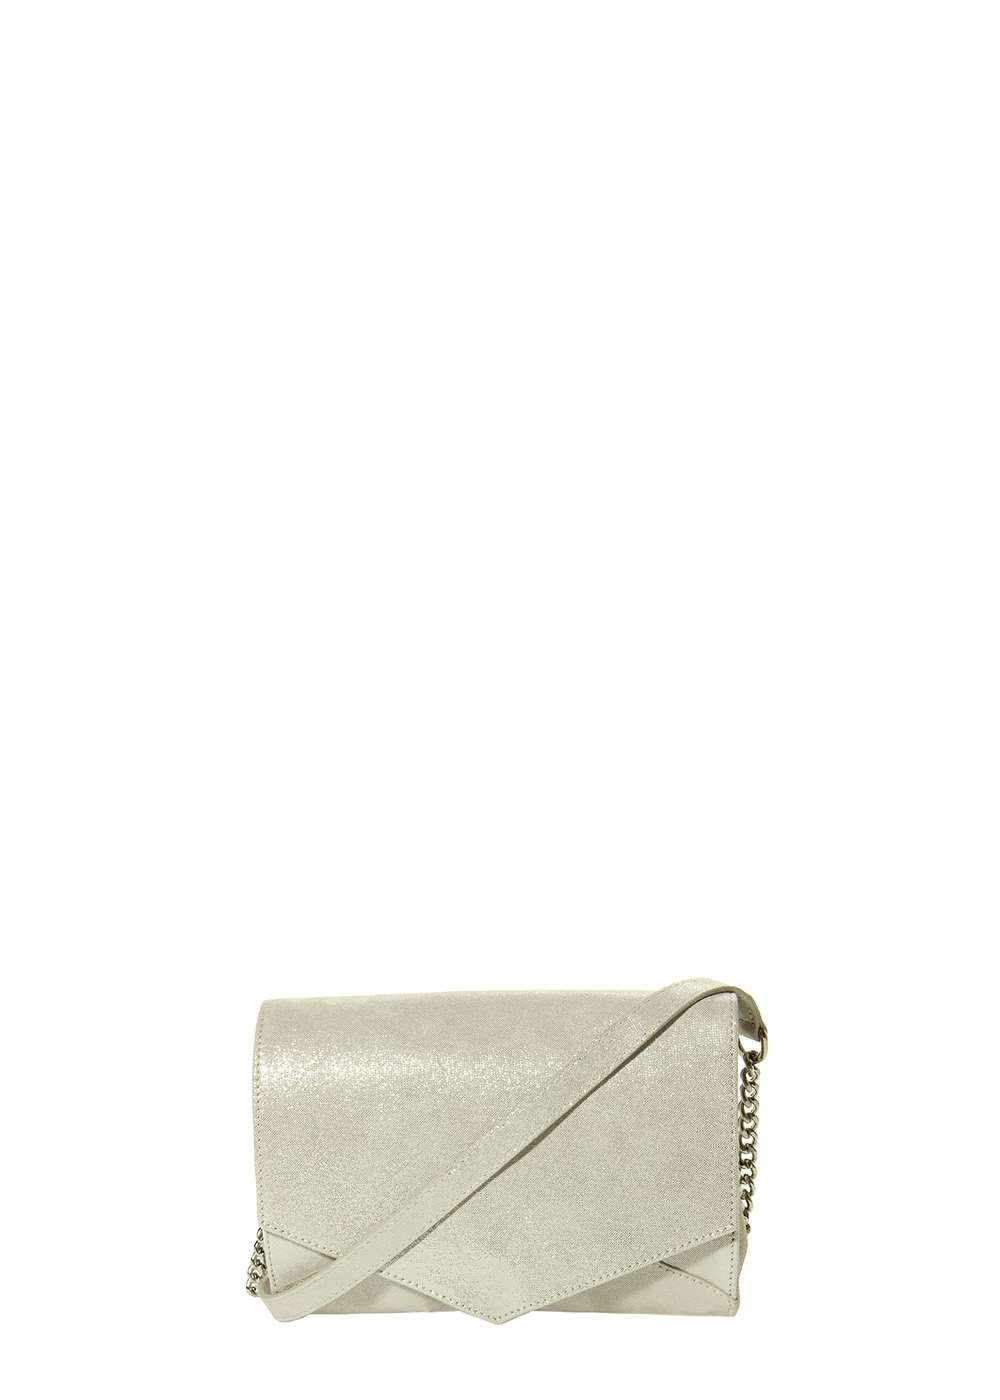 Marmi Exclusive Montage Silver Metallic Print Crossbody